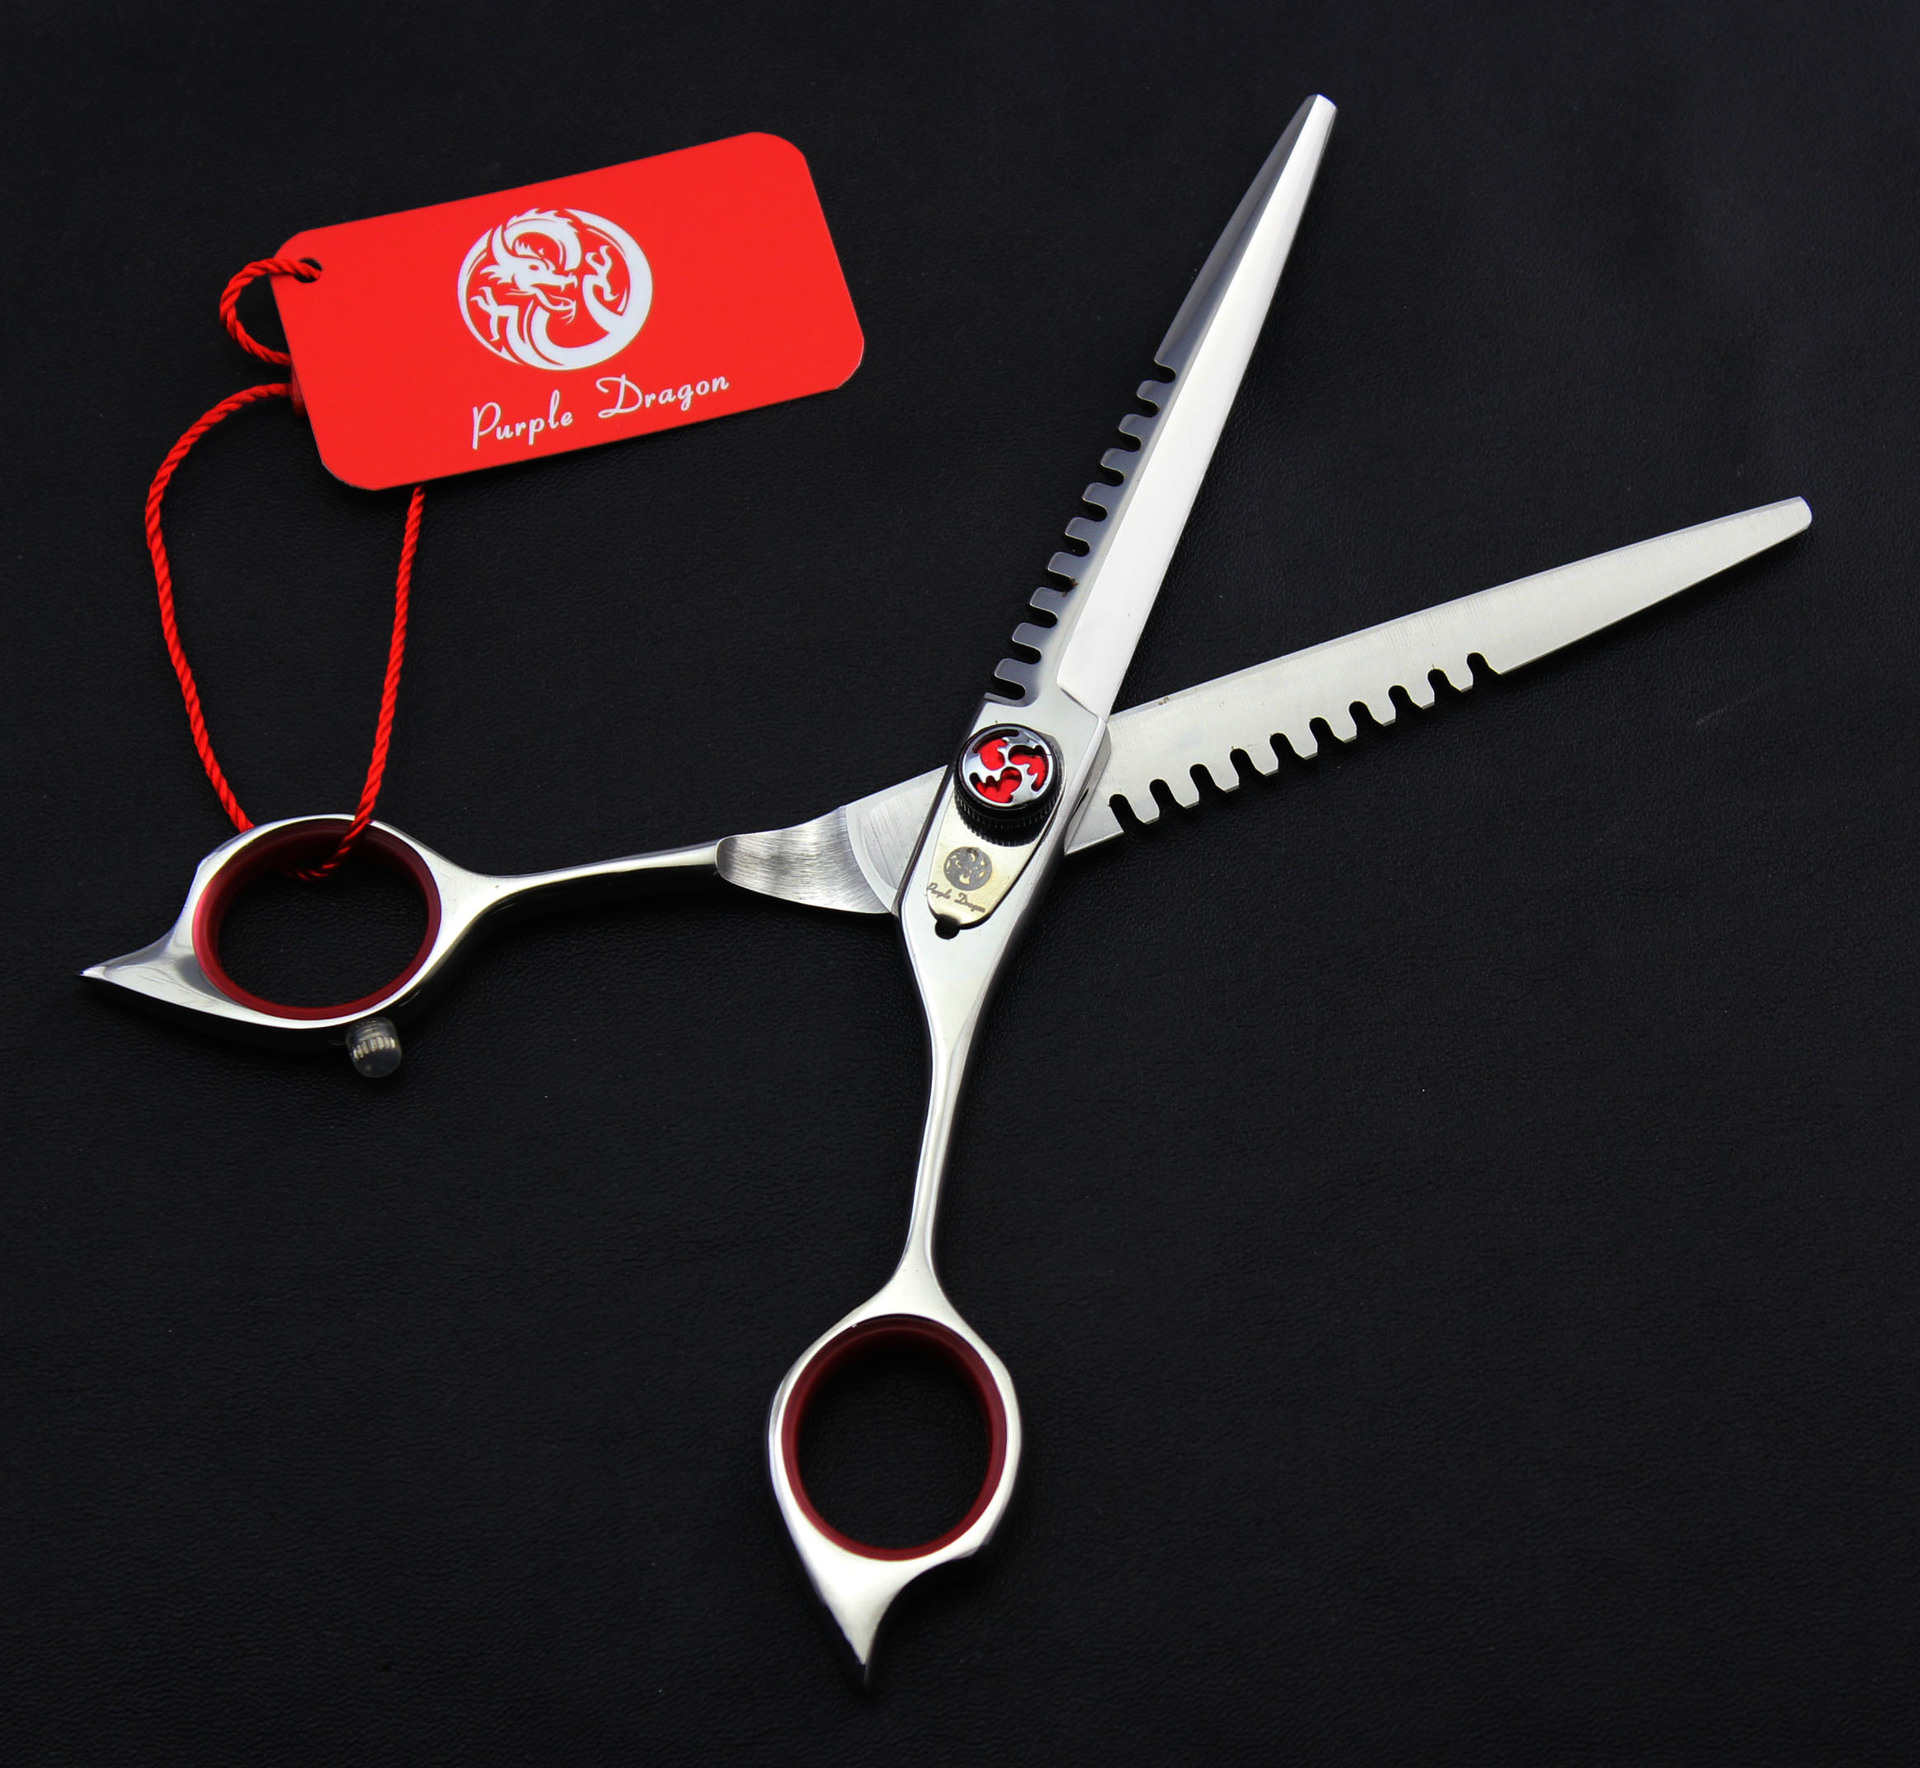 6 Inch Professional Hairdressing Scissors Hair Cutting Scissors Barber Shears<br>